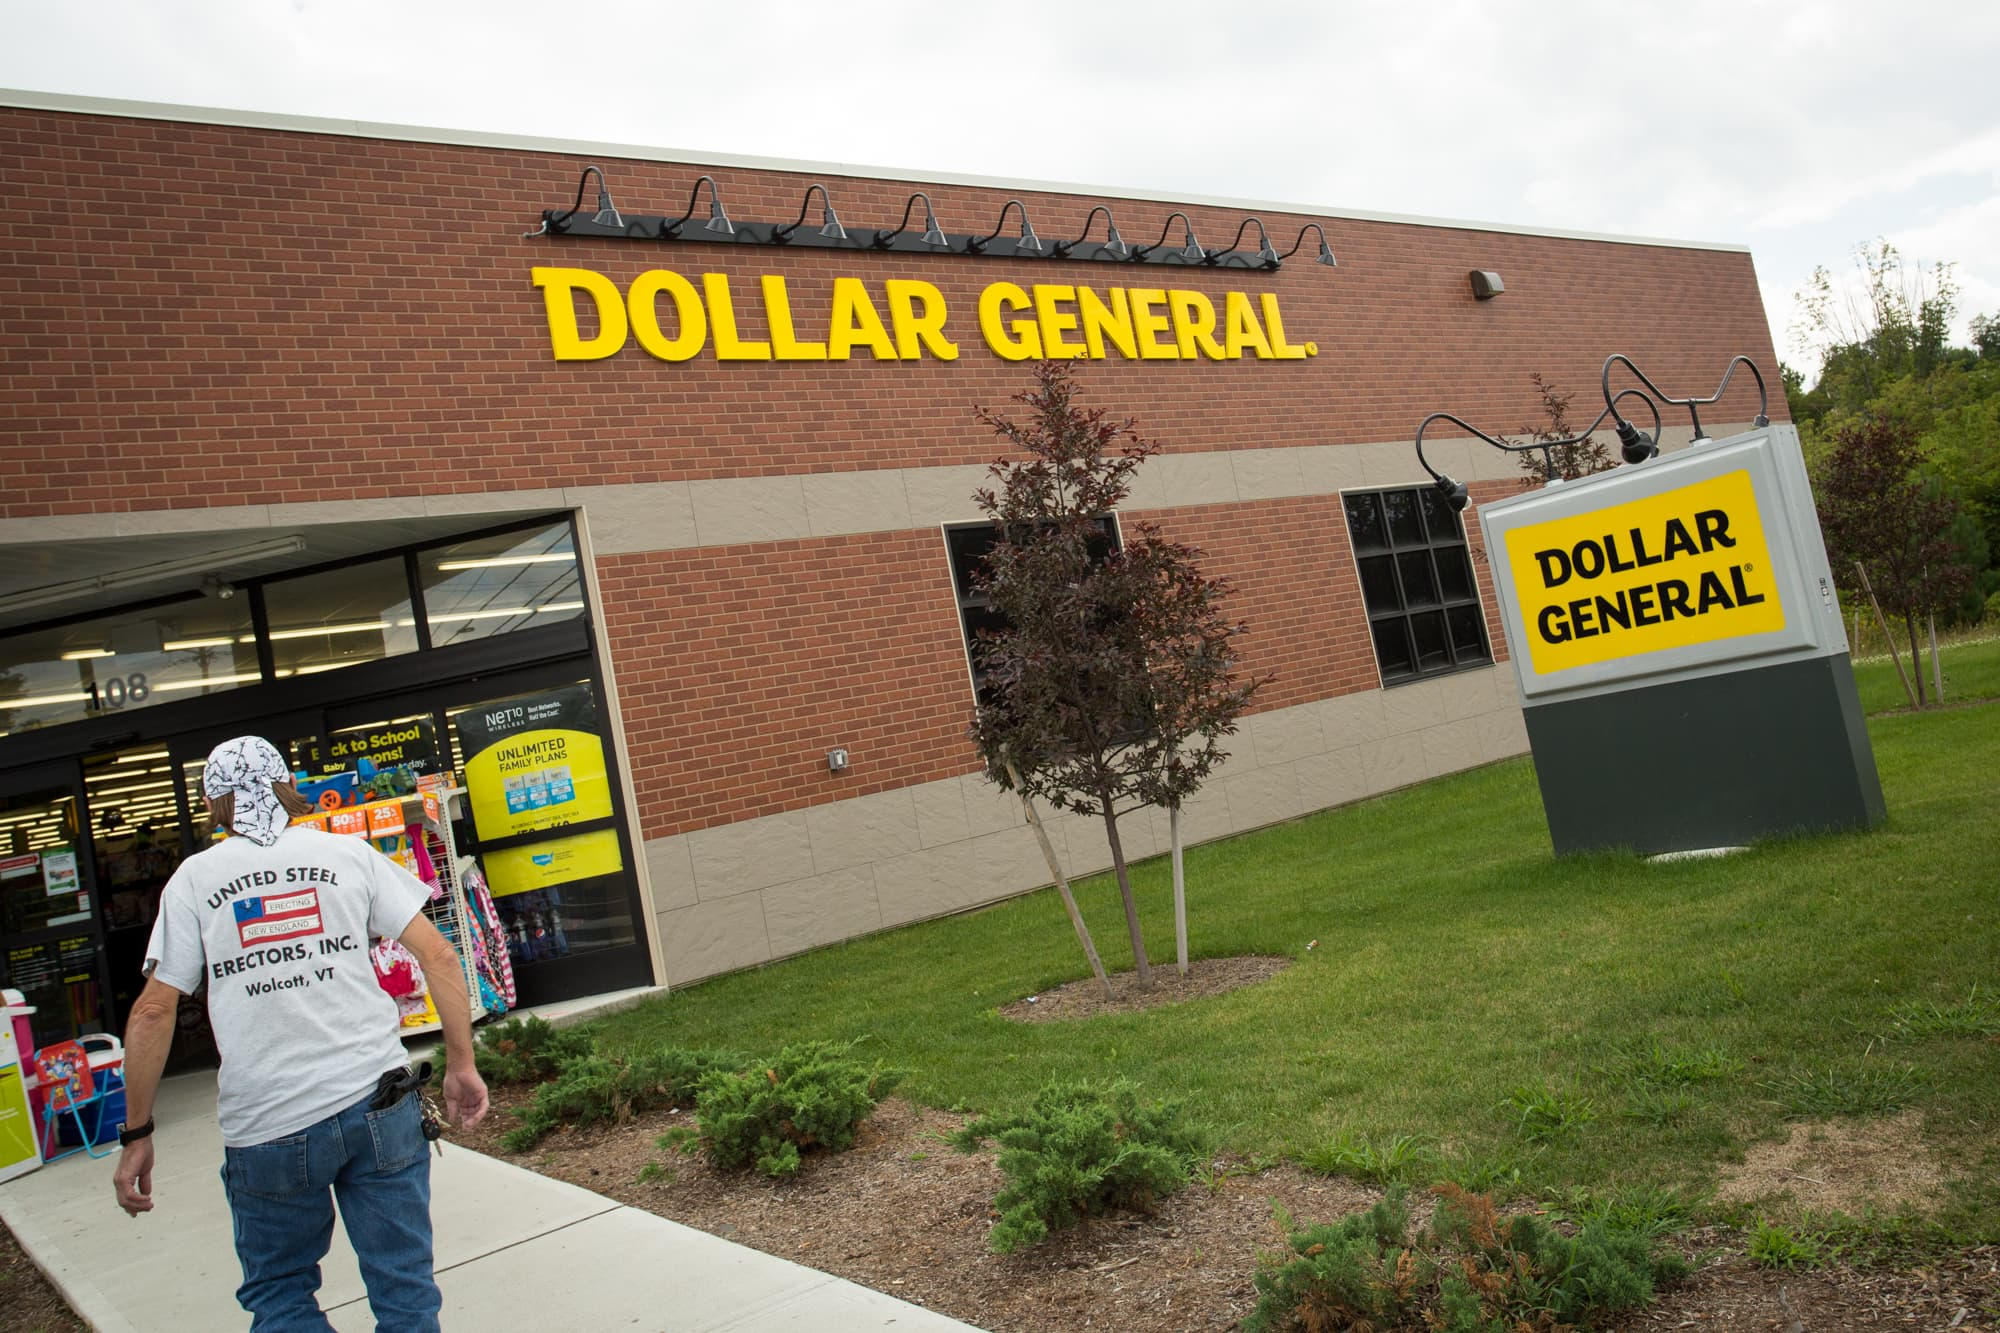 New merchandise, revamped stores drive Dollar General forecast, shares up 8%